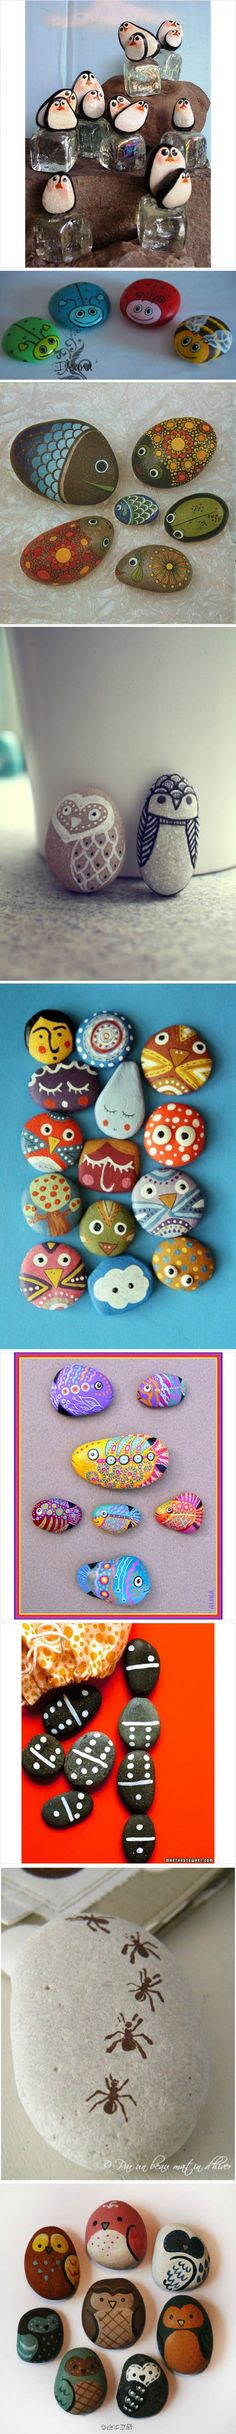 Most adorable ideas for painting rocks